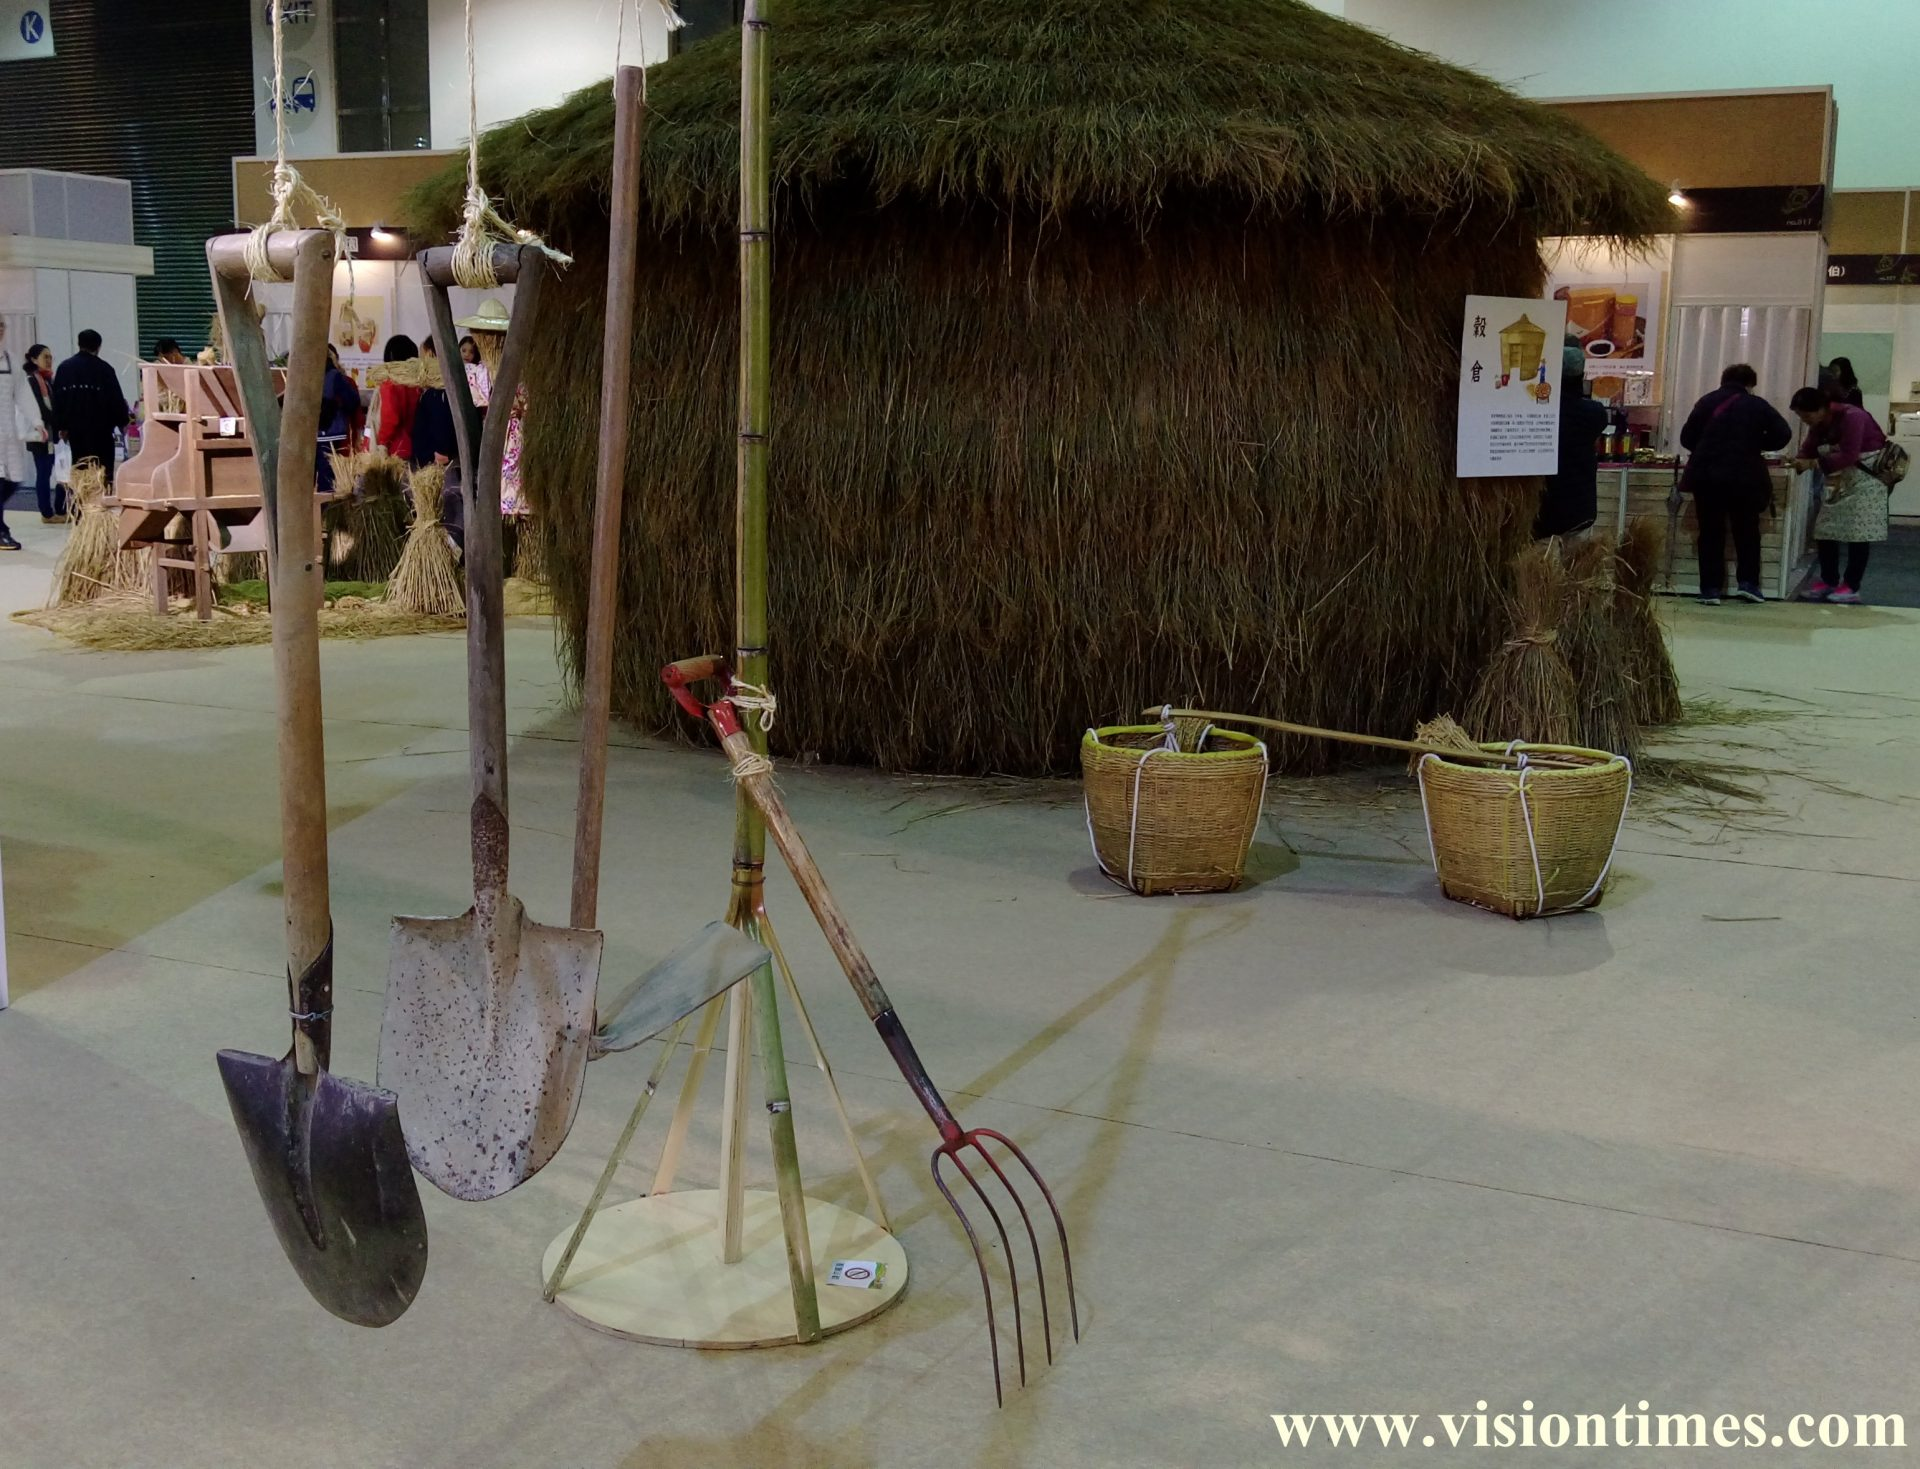 A barn made of straw and traditional tools used in Hakka villages at the Hakka Expo (Image: Julia Fu / Vision Times)